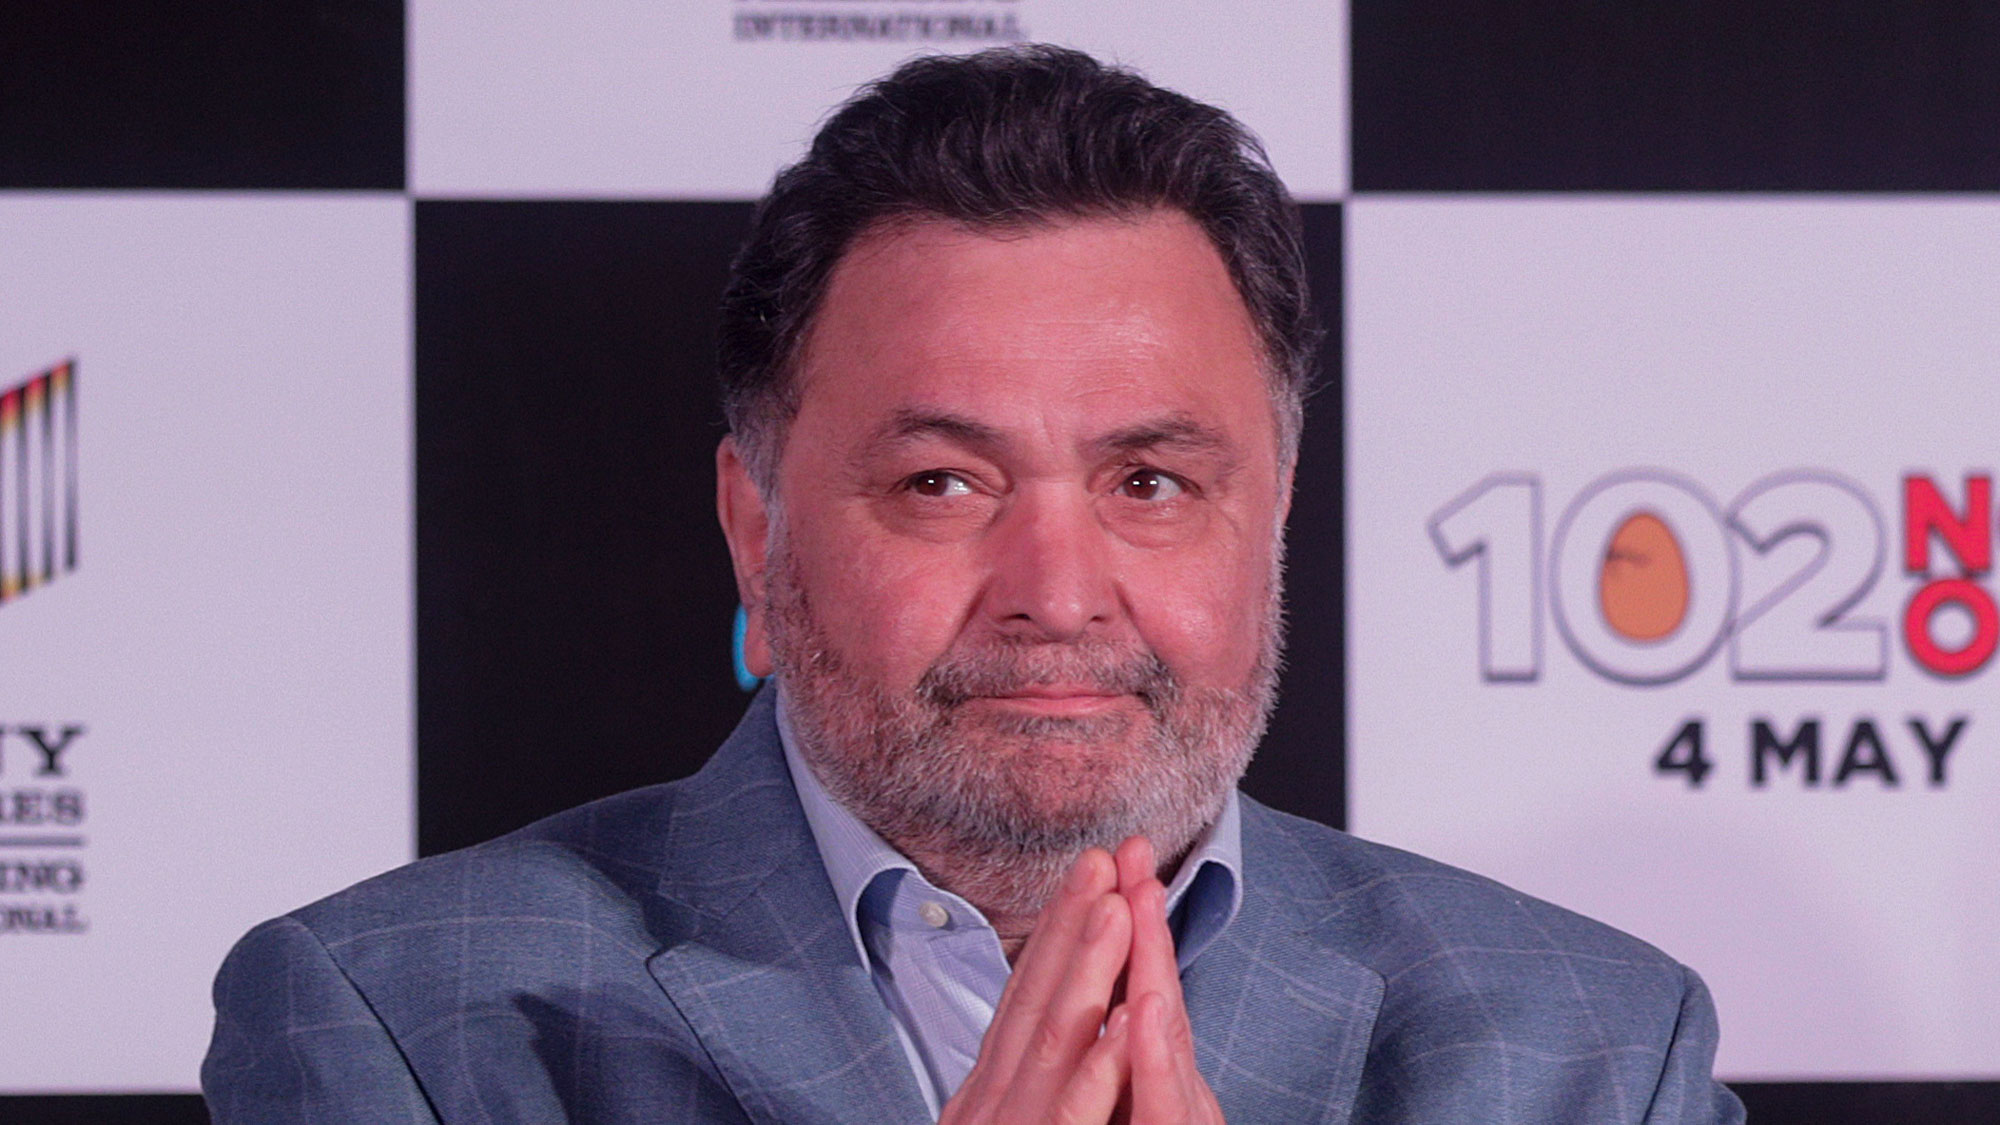 IMG RISHI KAPOOR, Indian Actor